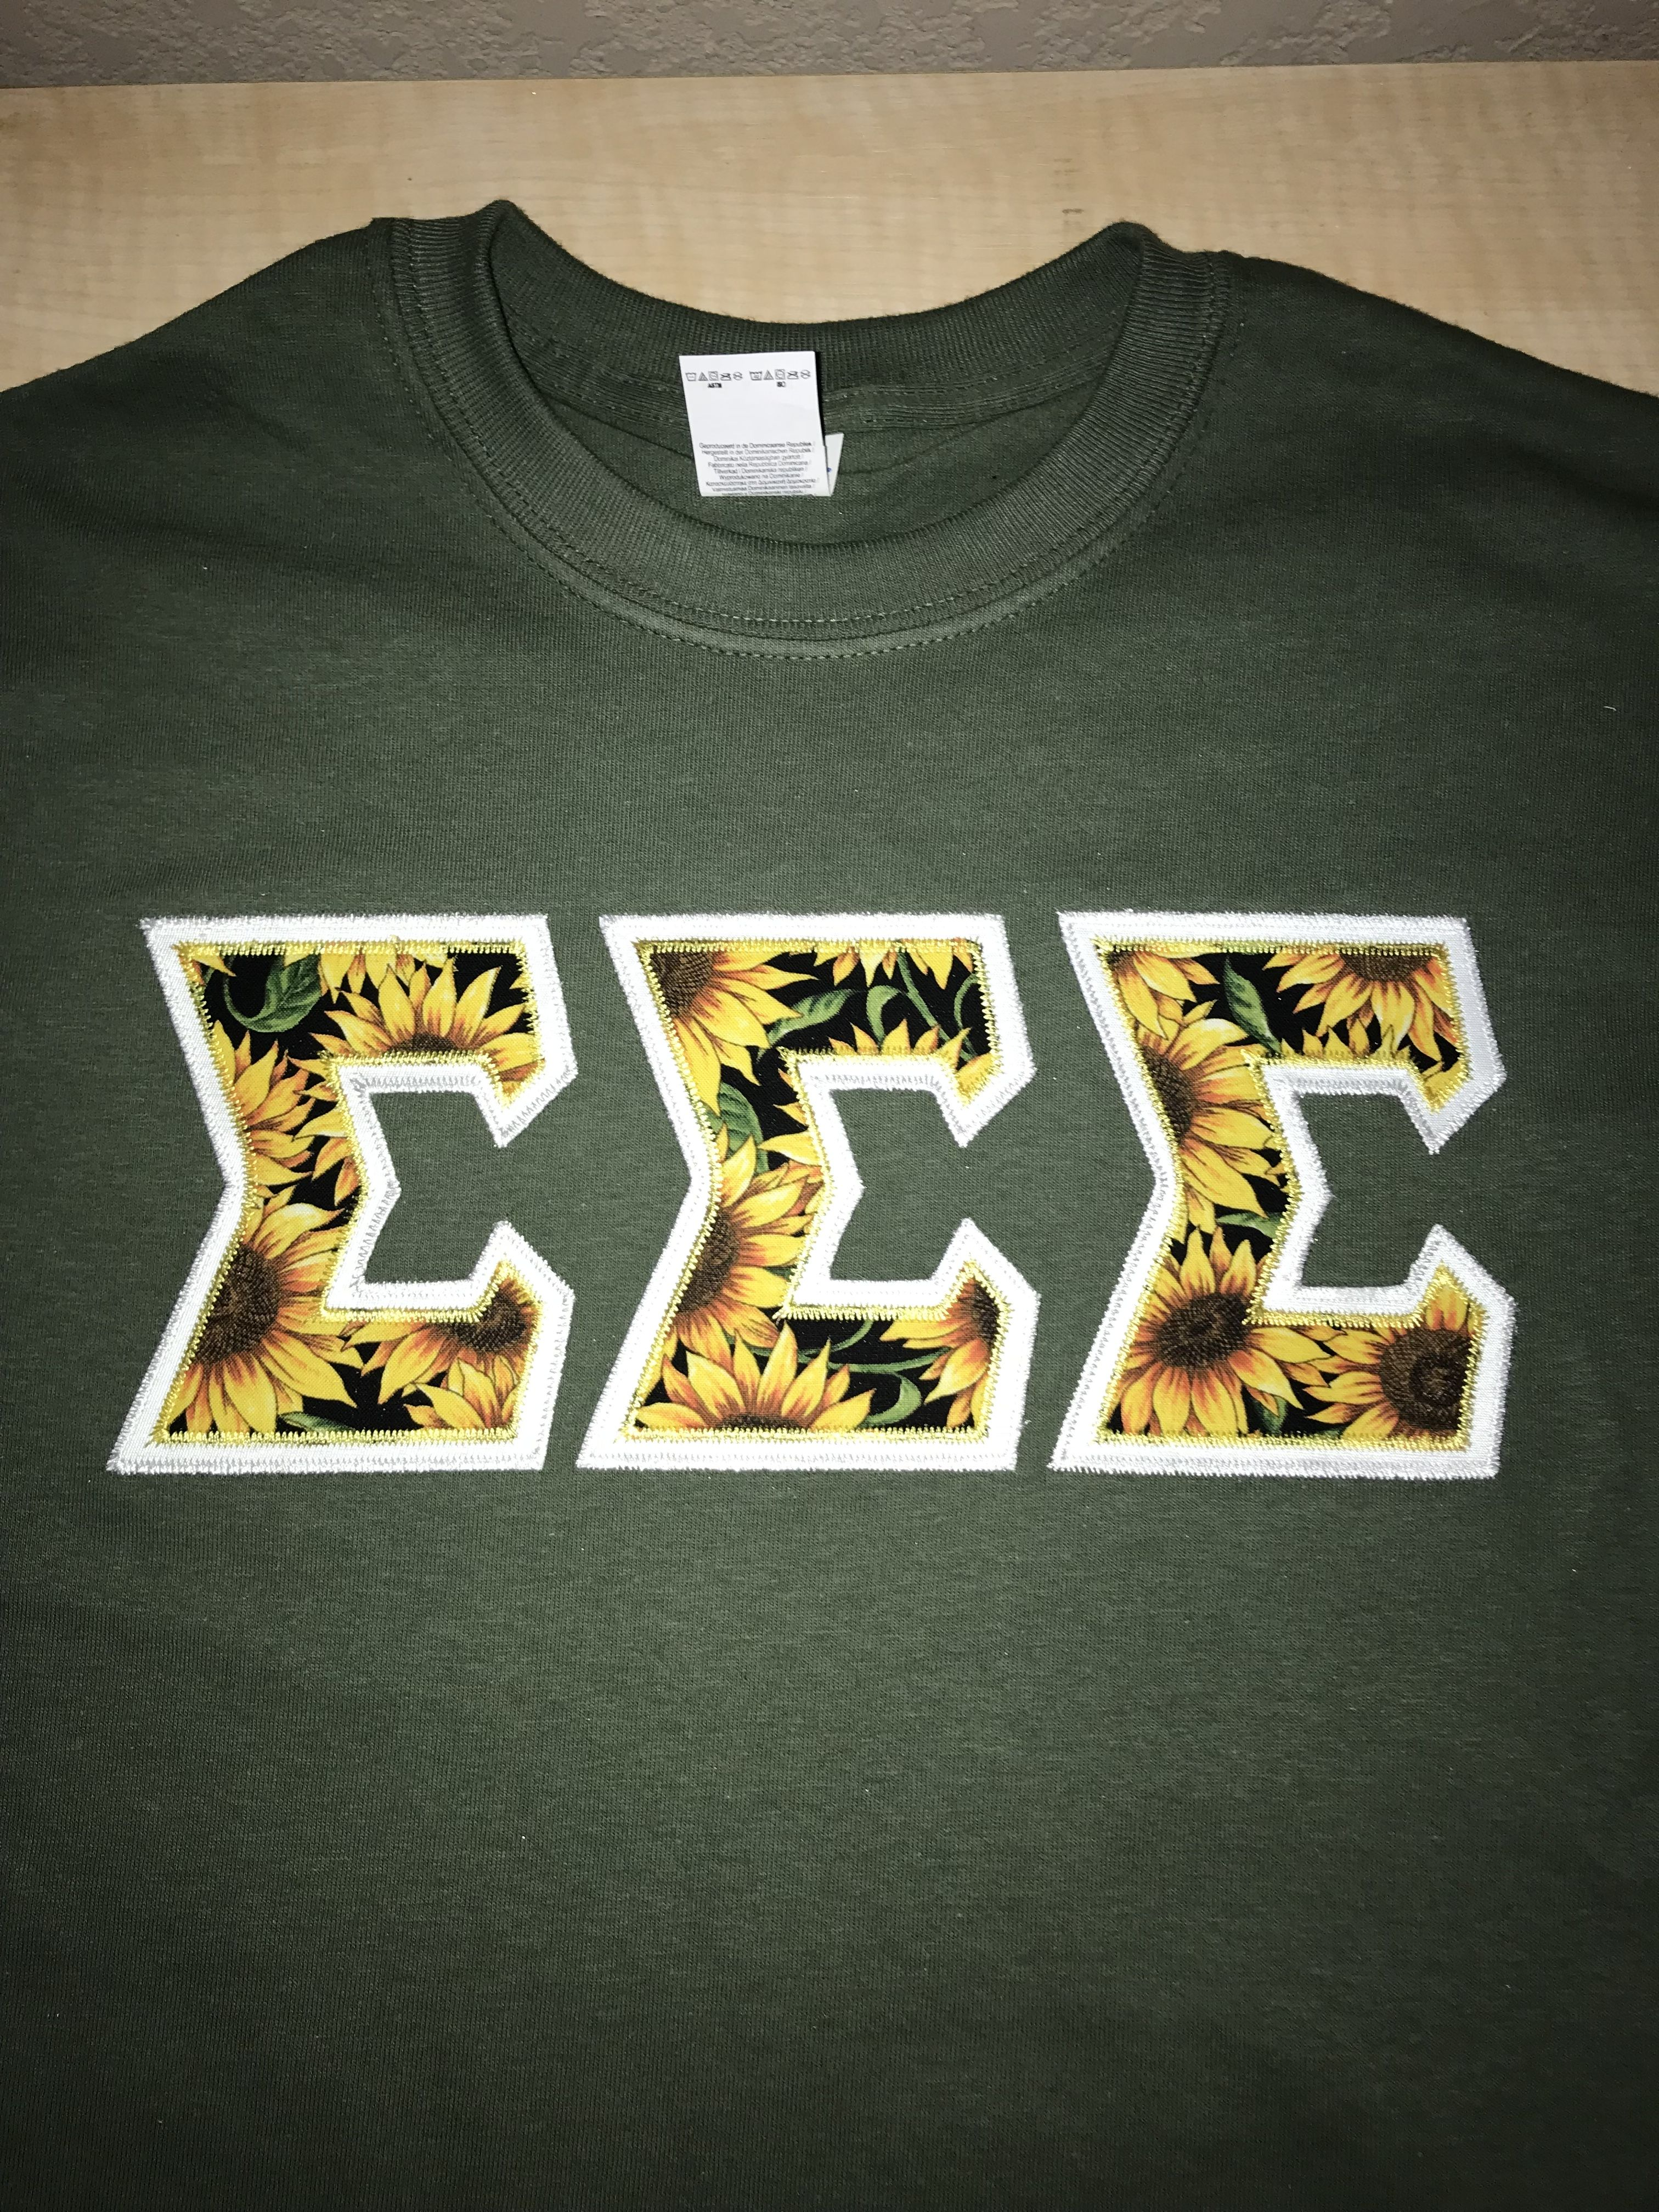 Tri Sigma Letters : sigma, letters, Sigma, Shirts,, Sorority, Shirts, Letters,, Letter